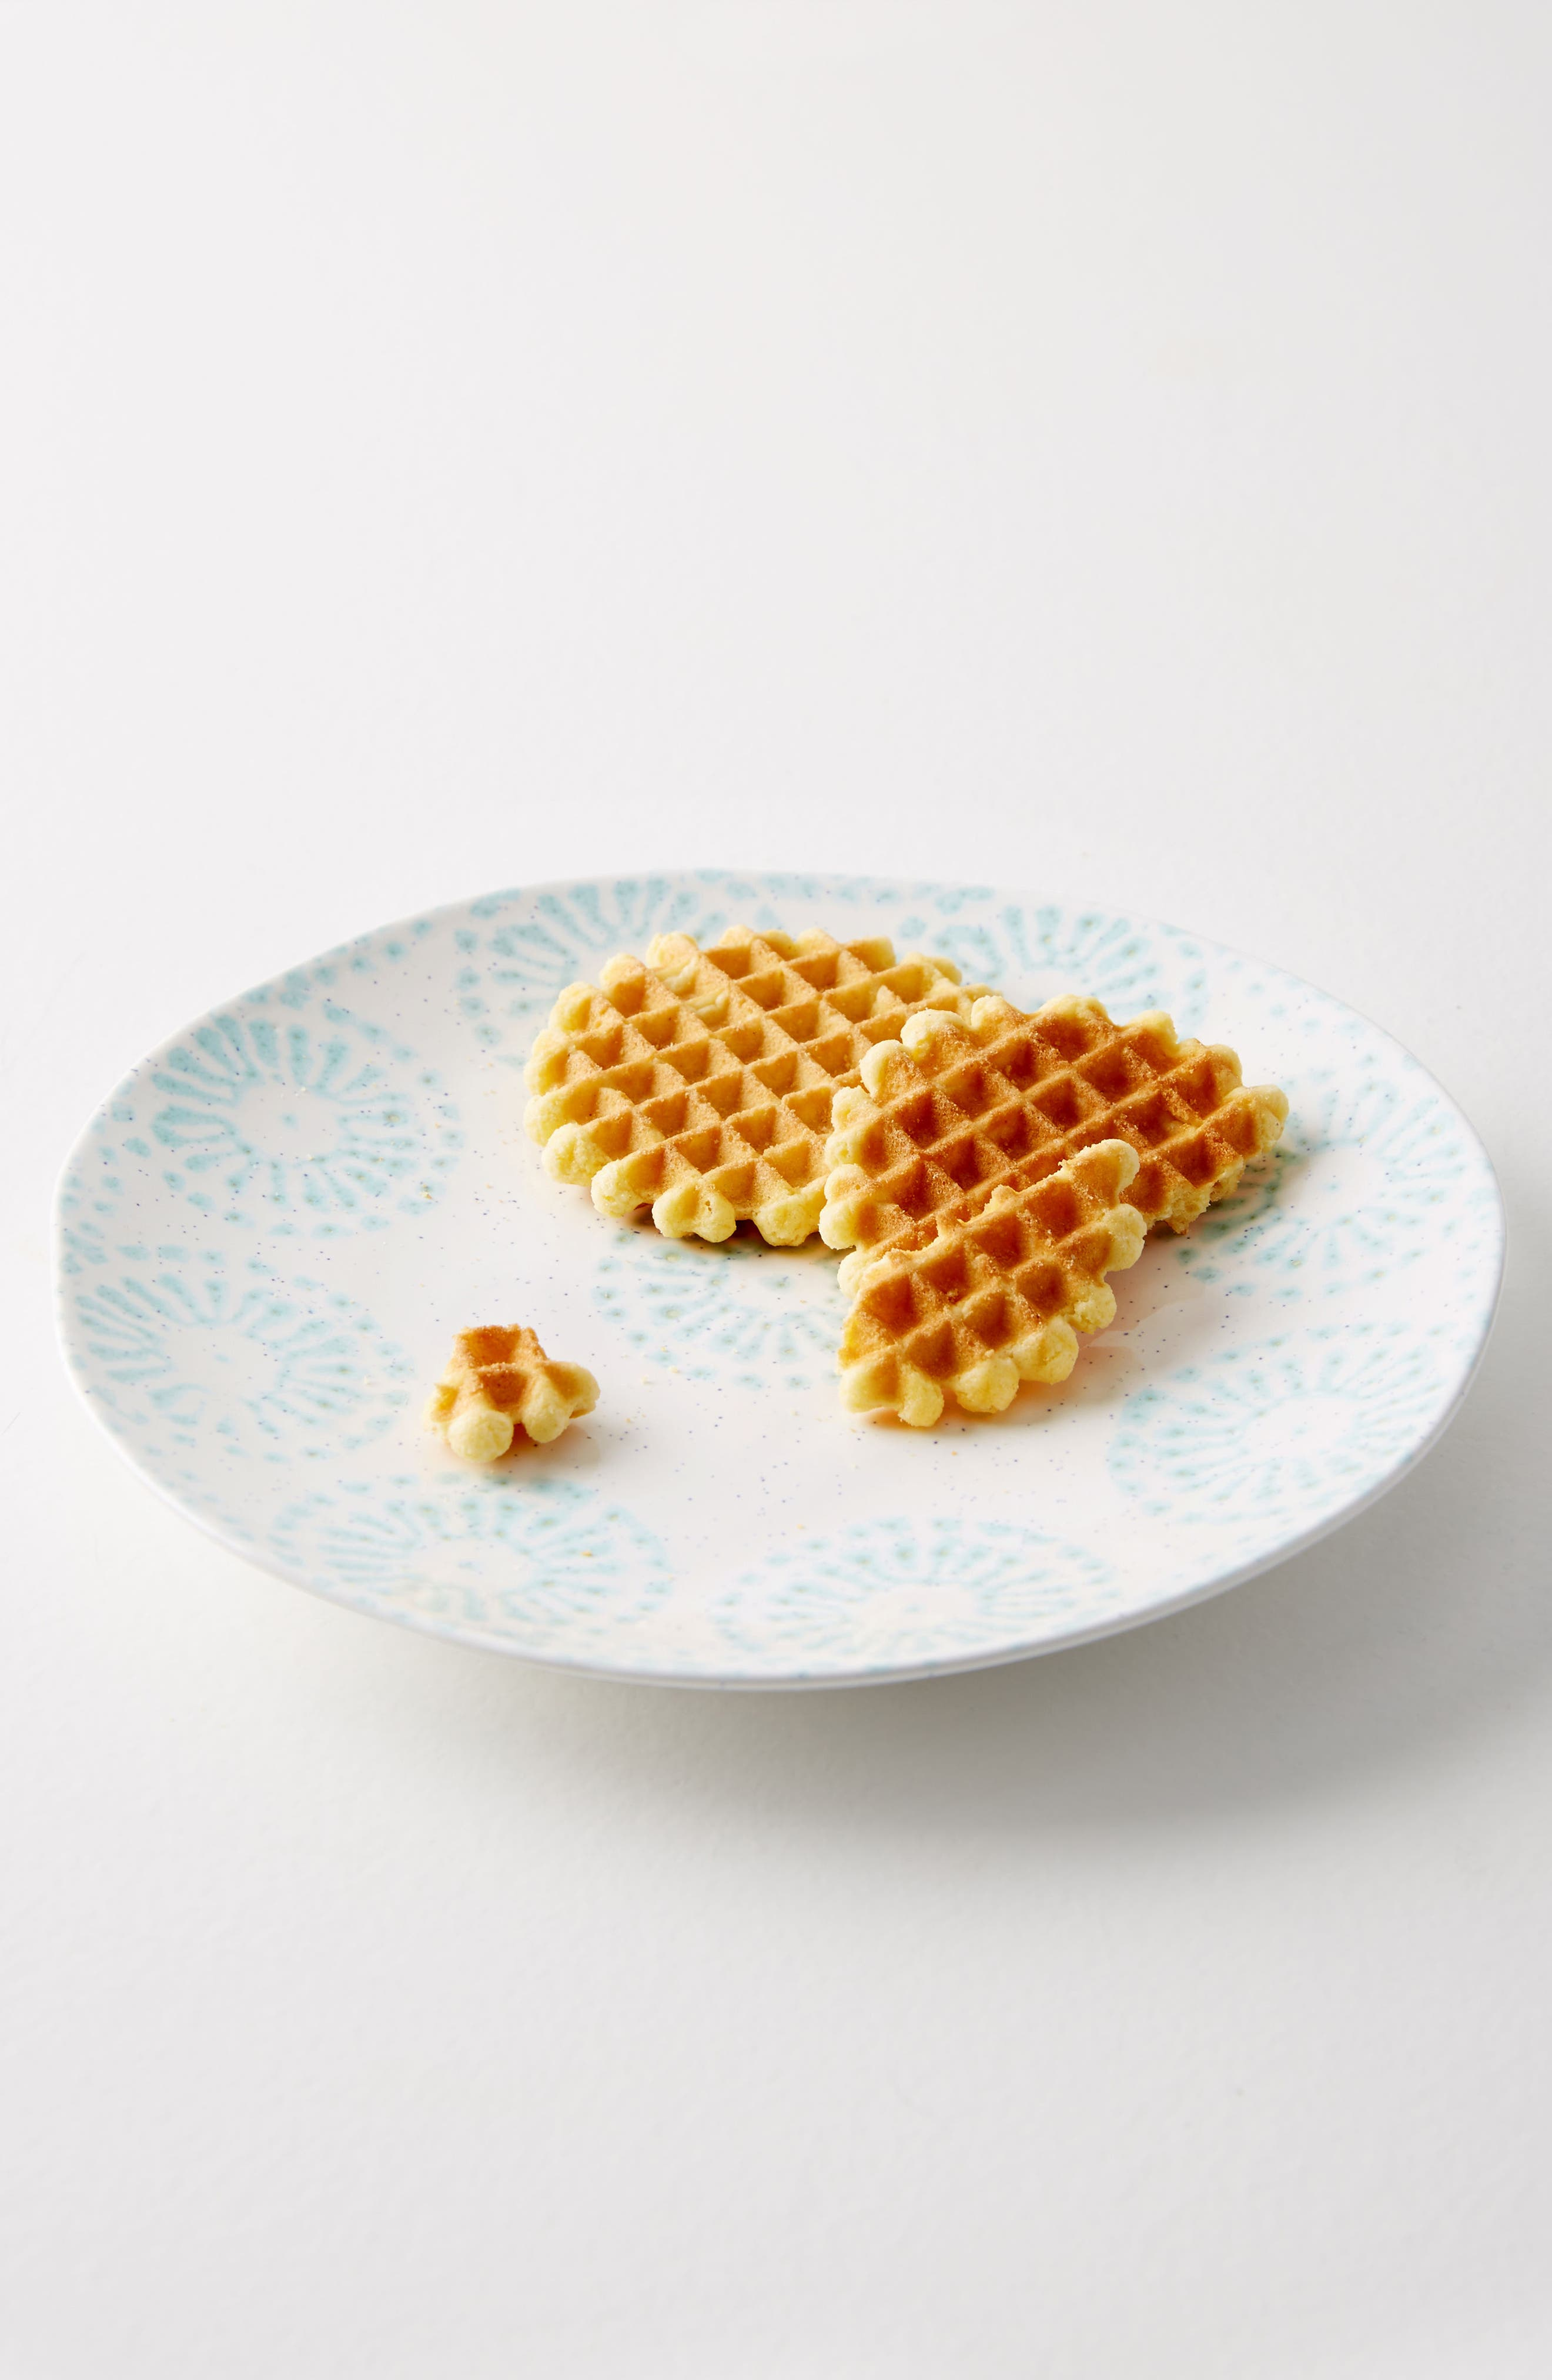 Anthropologie Tacola Canapé Plate